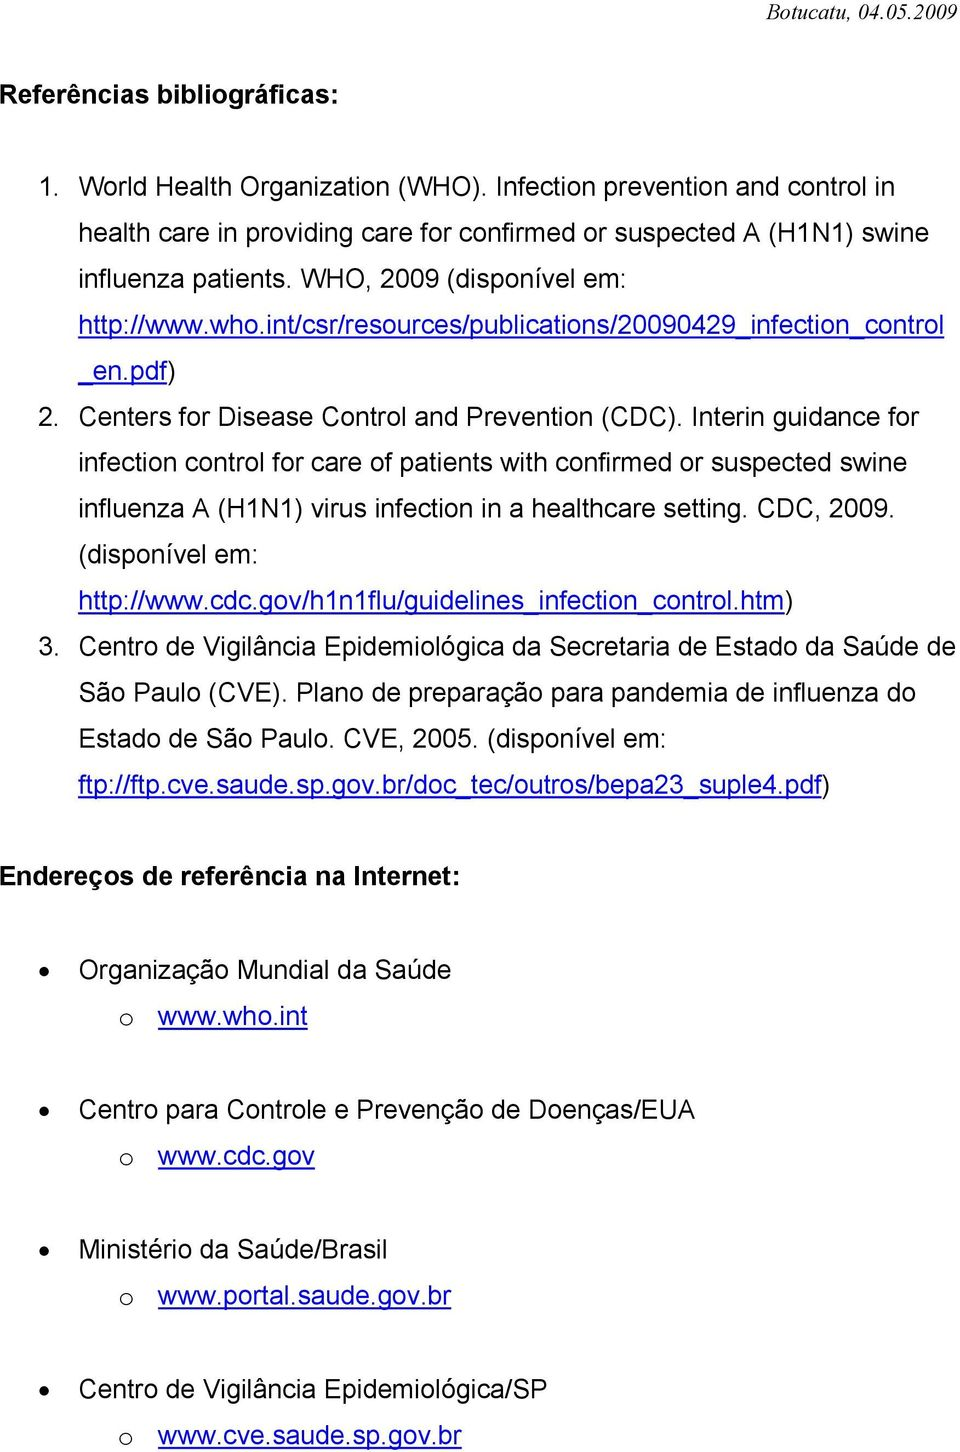 Interin guidance for infection control for care of patients with confirmed or suspected swine influenza A (H1N1) virus infection in a healthcare setting. CDC, 2009. (disponível em: http://www.cdc.